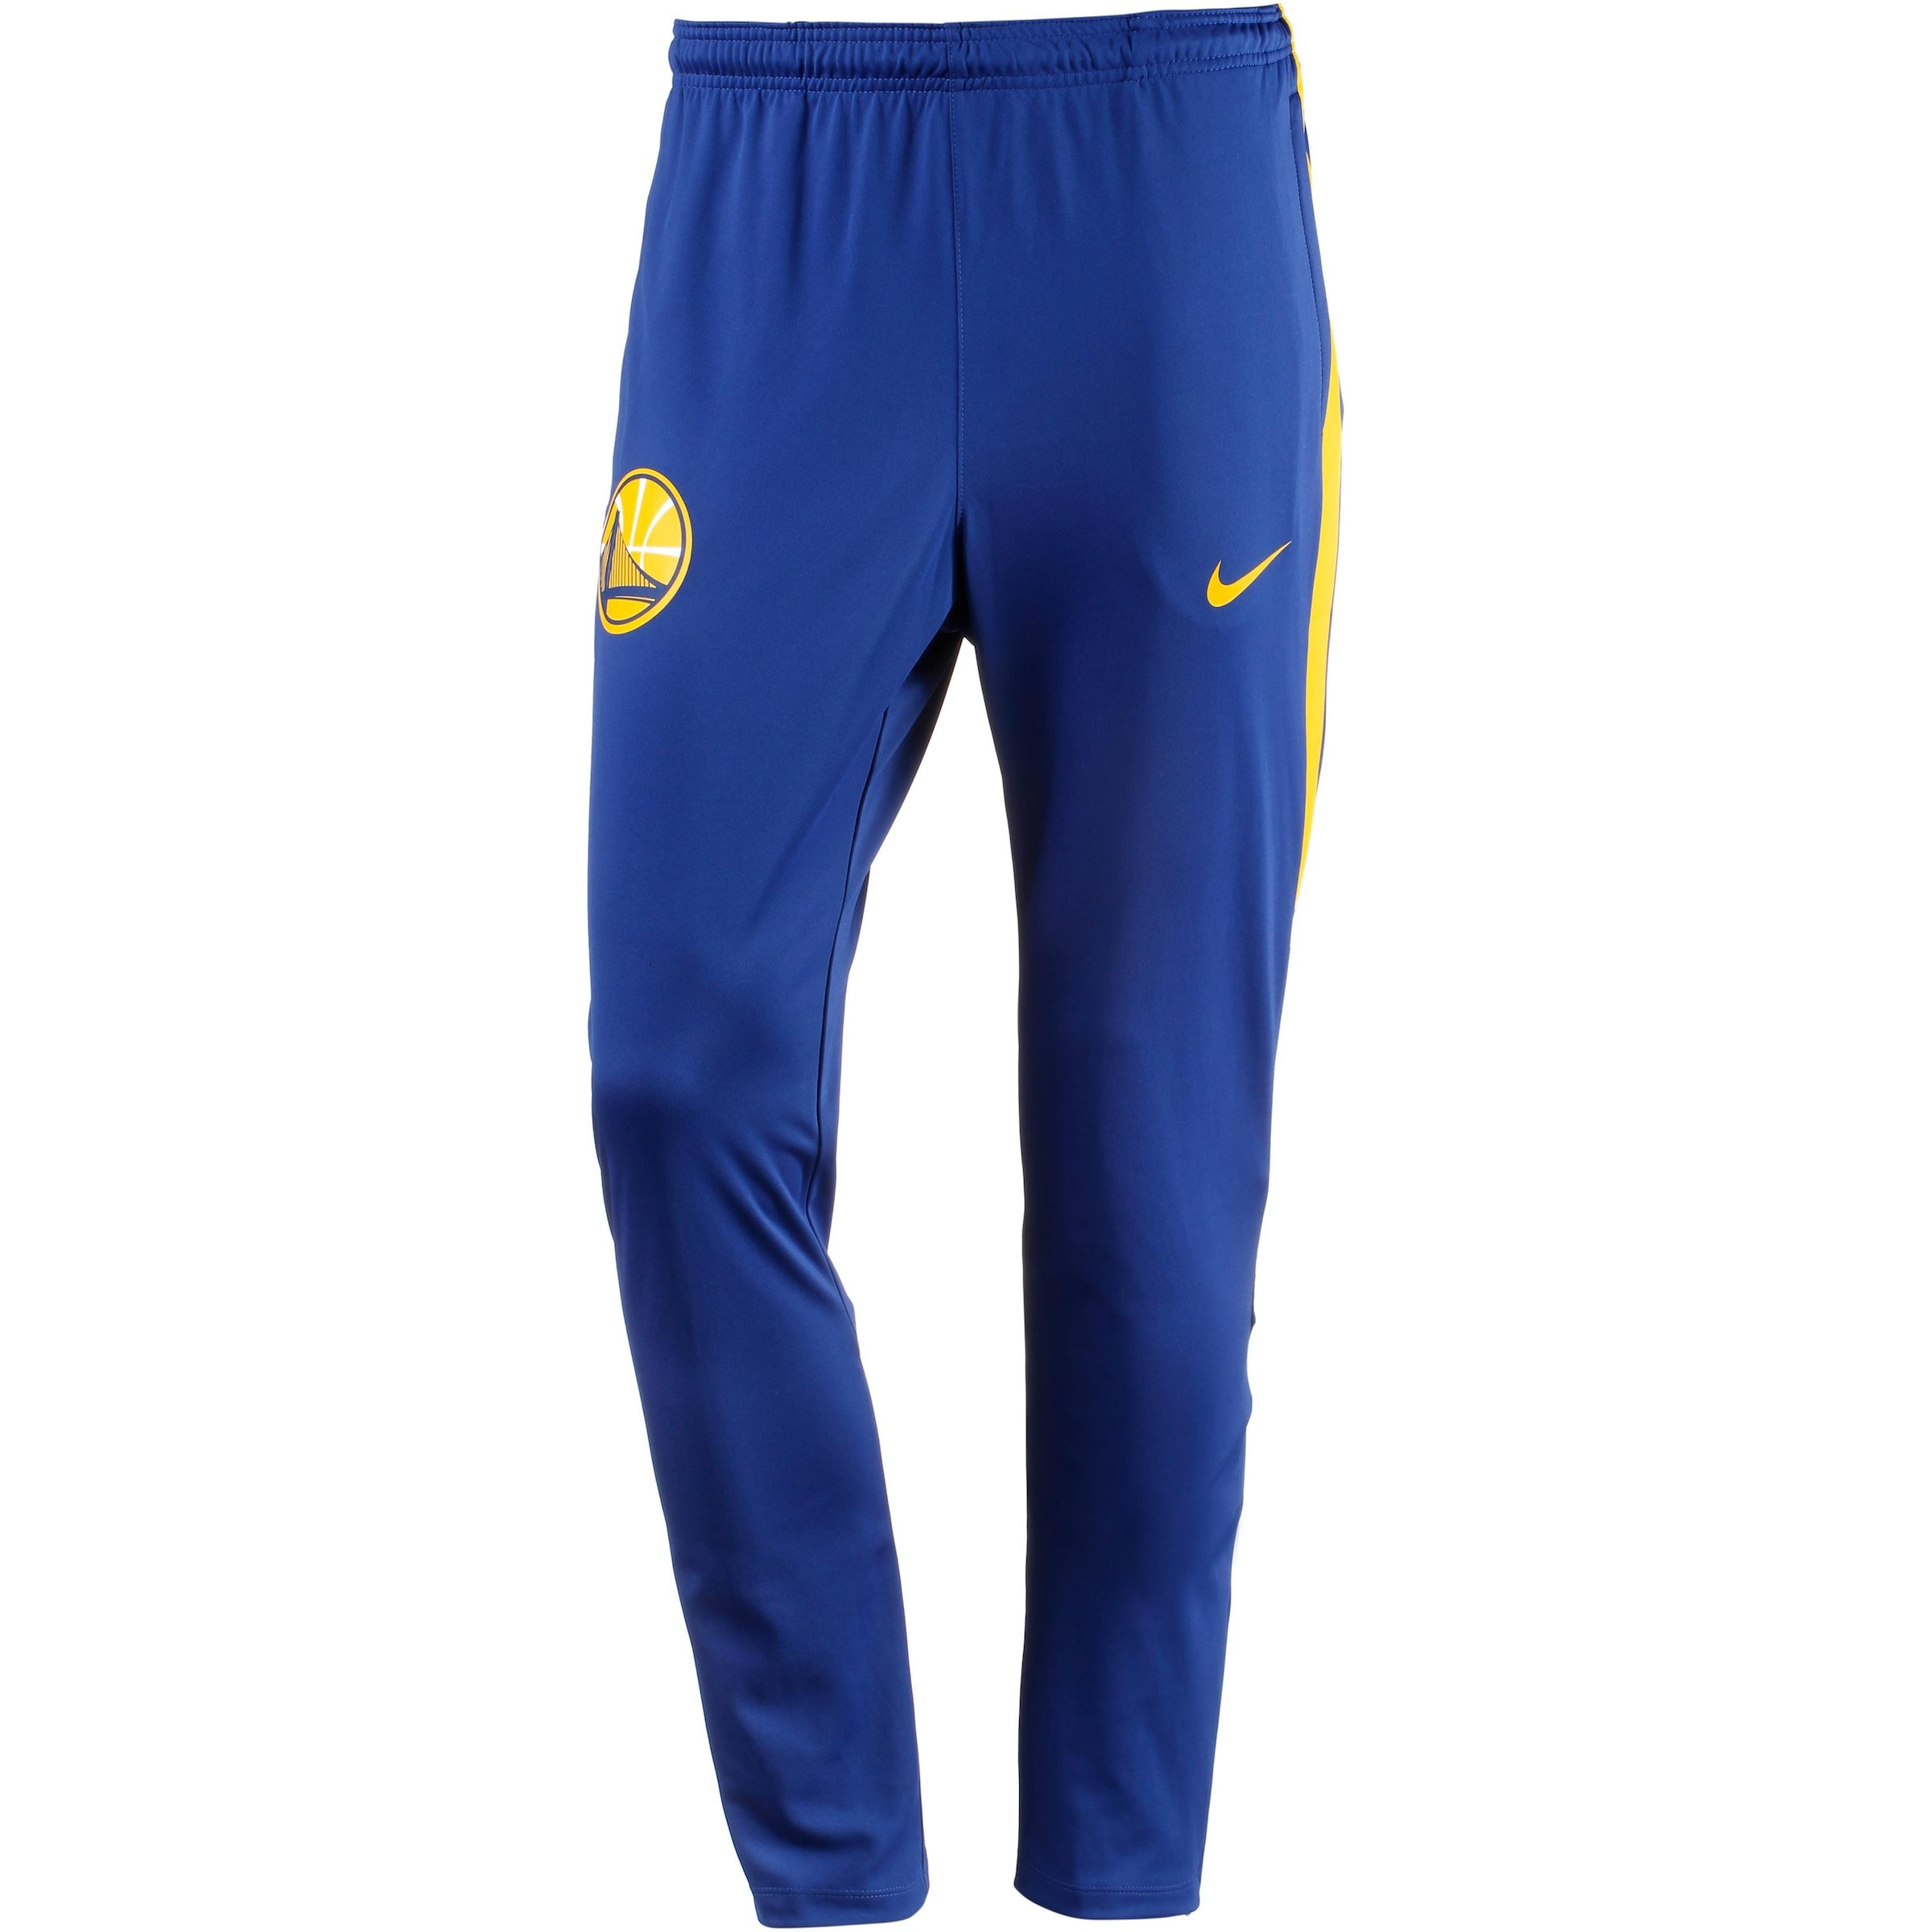 Neue Art Und Weise Stil NIKE 'GOLDEN STATE WARRIORS' Trainingsanzug Auslass 100% Authentisch 5cyODhj6